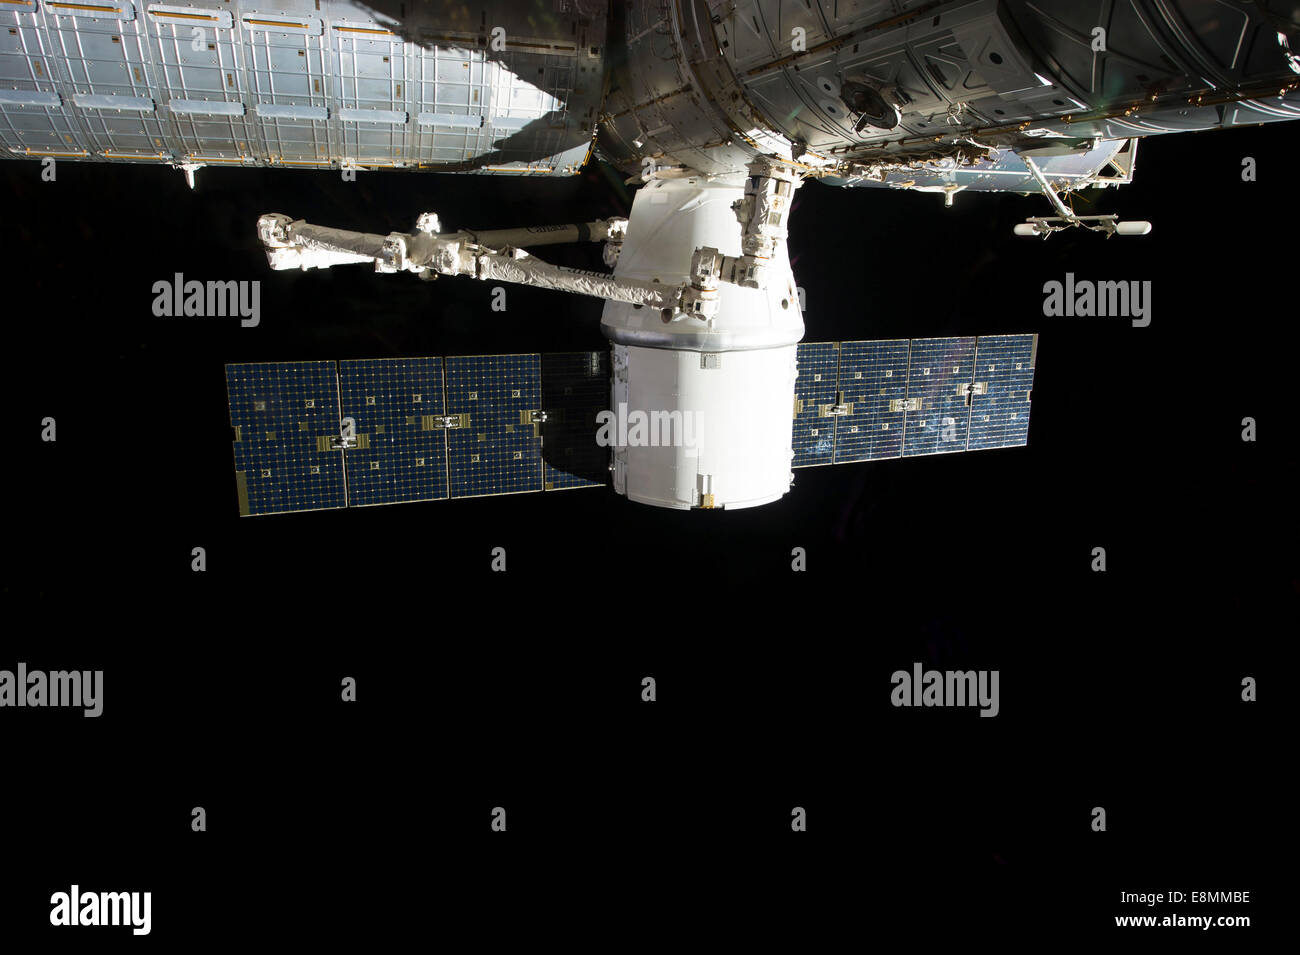 March 3, 2013 - The docking of SpaceX Dragon to the International Space Station. - Stock Image